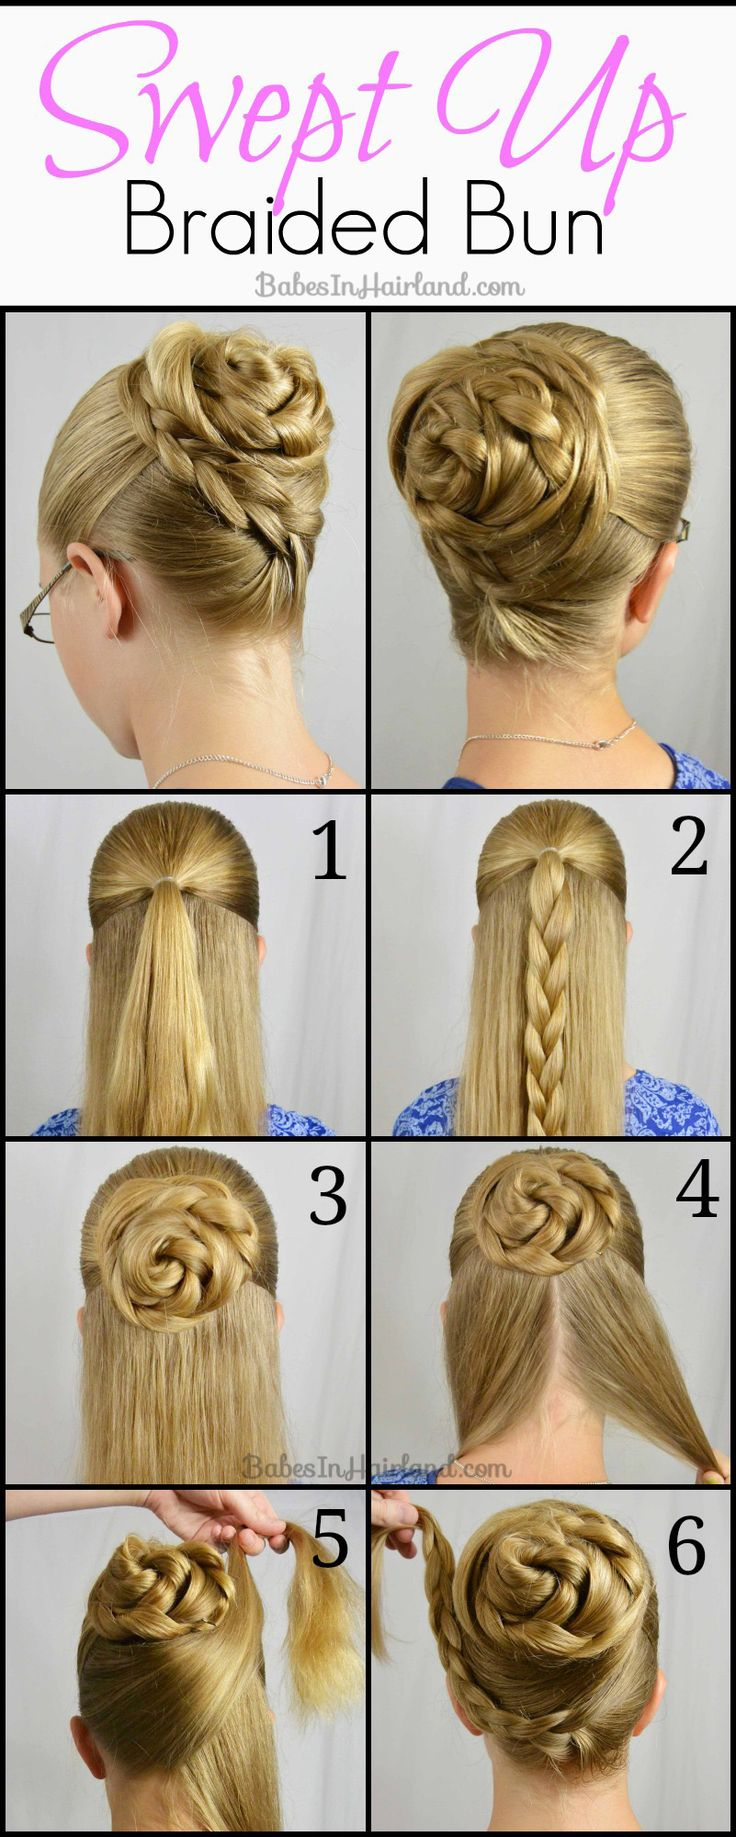 Swept Up Braided Bun